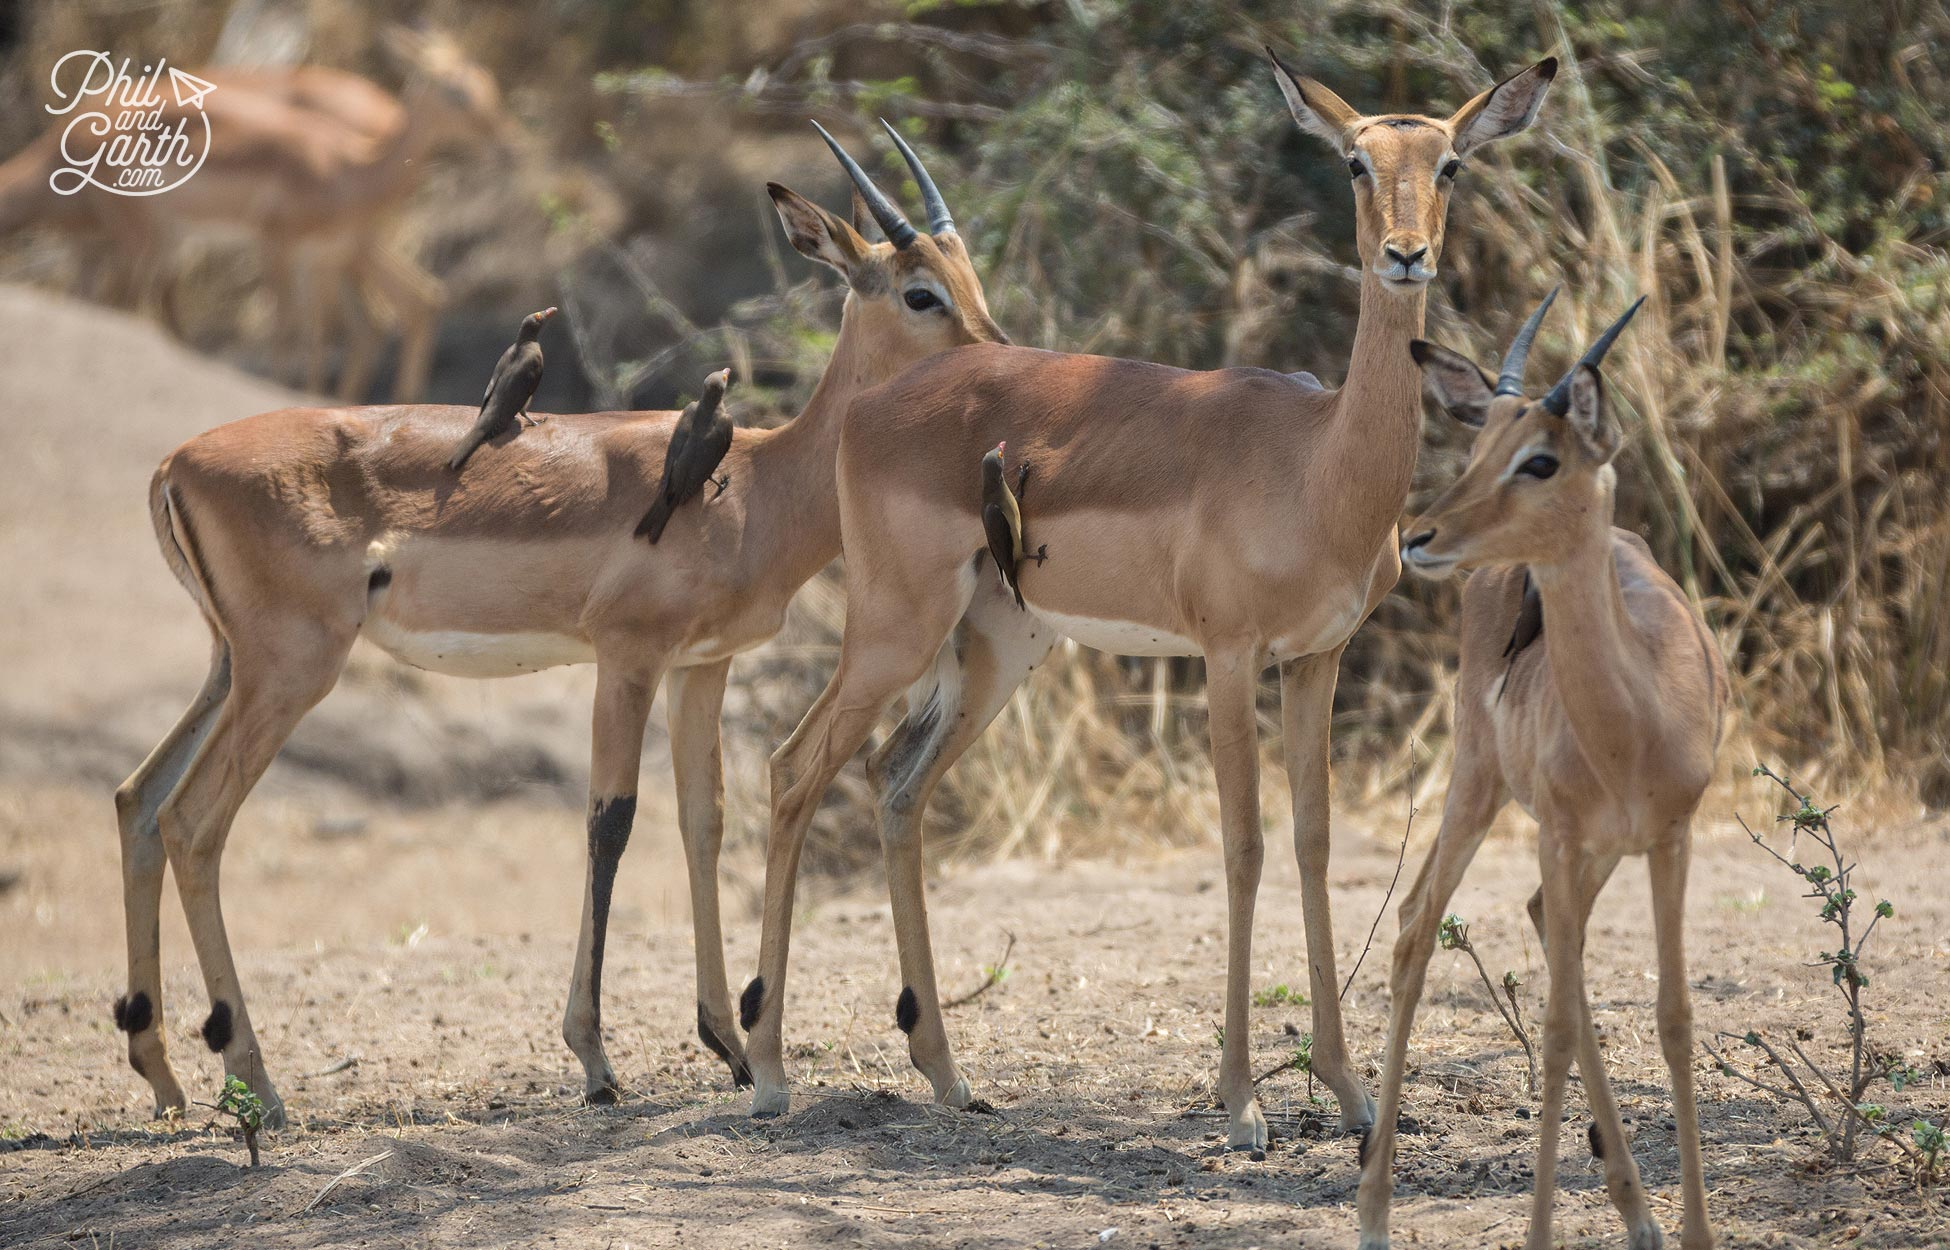 3 lovely Impalas with some friends taking a ride. There's loads of Impalas and they're everywhere